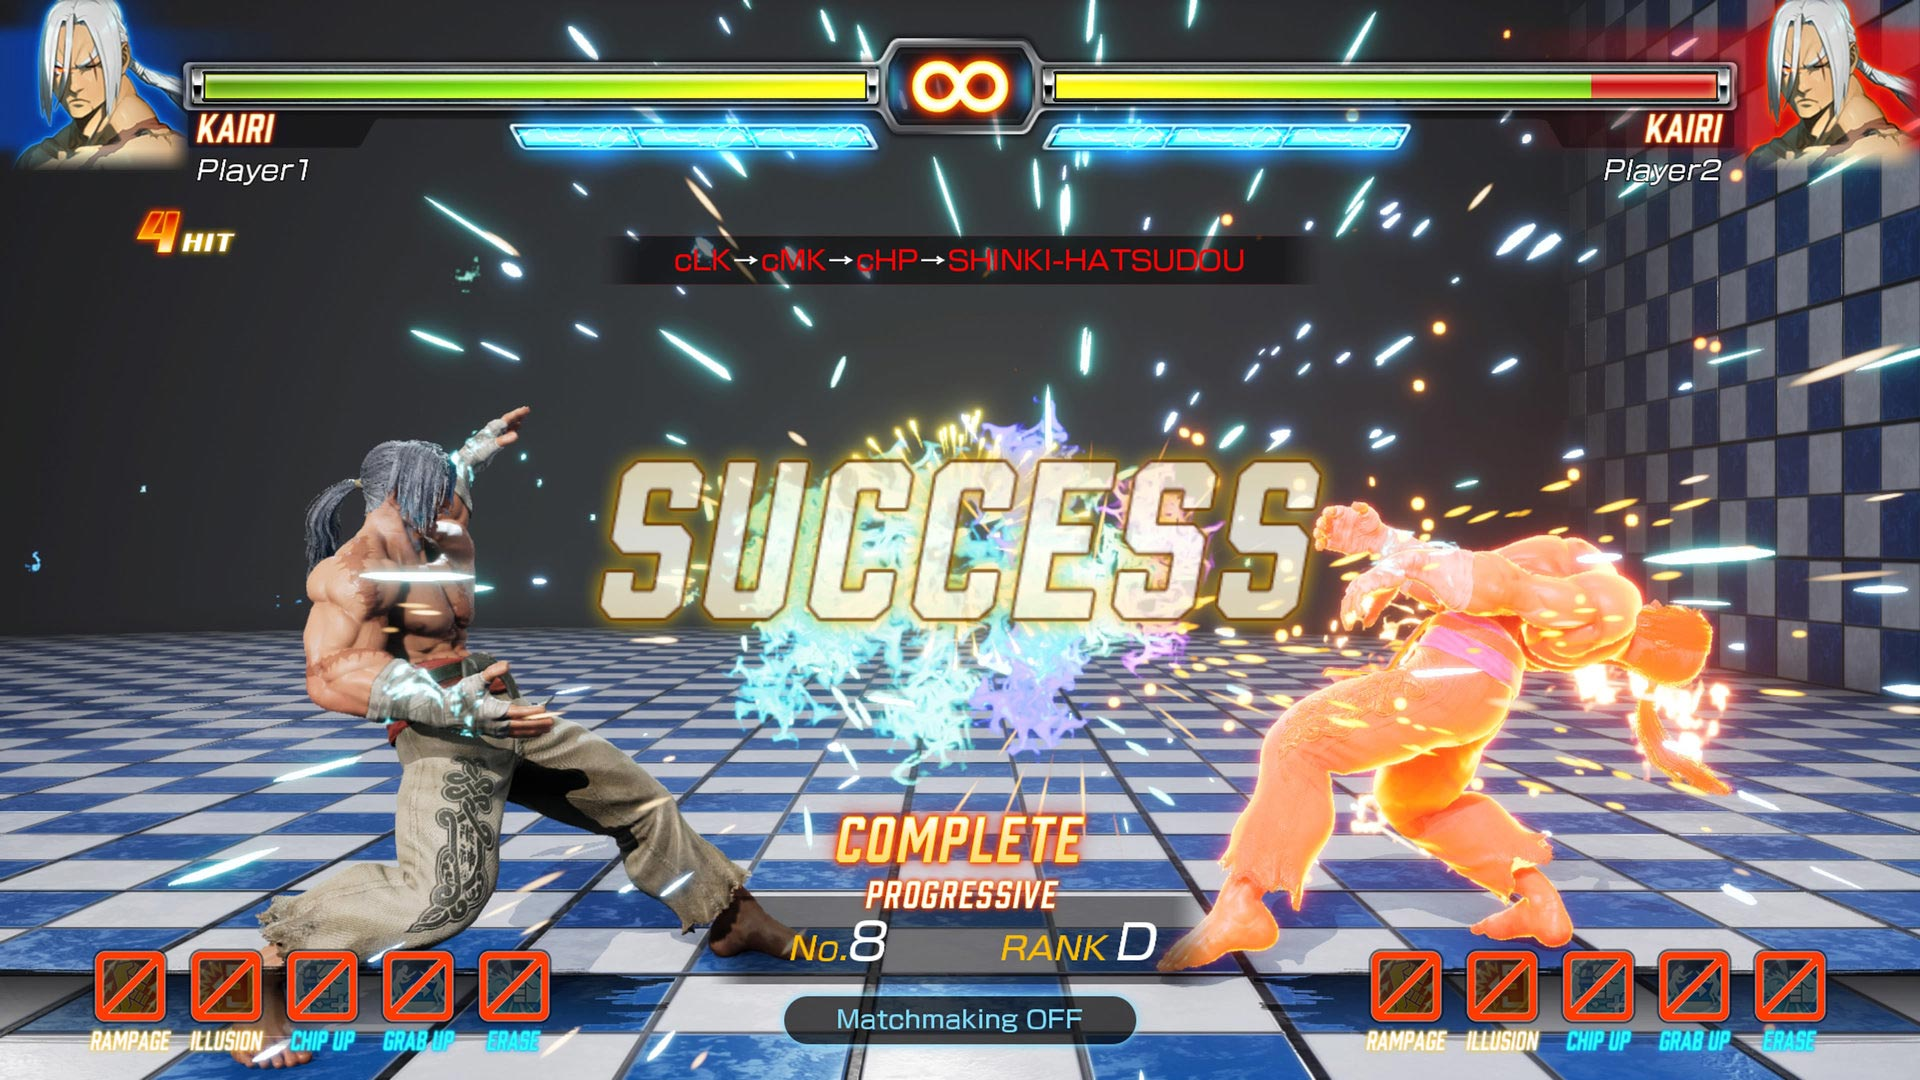 Fighting EX Layer launch screenshots 9 out of 10 image gallery